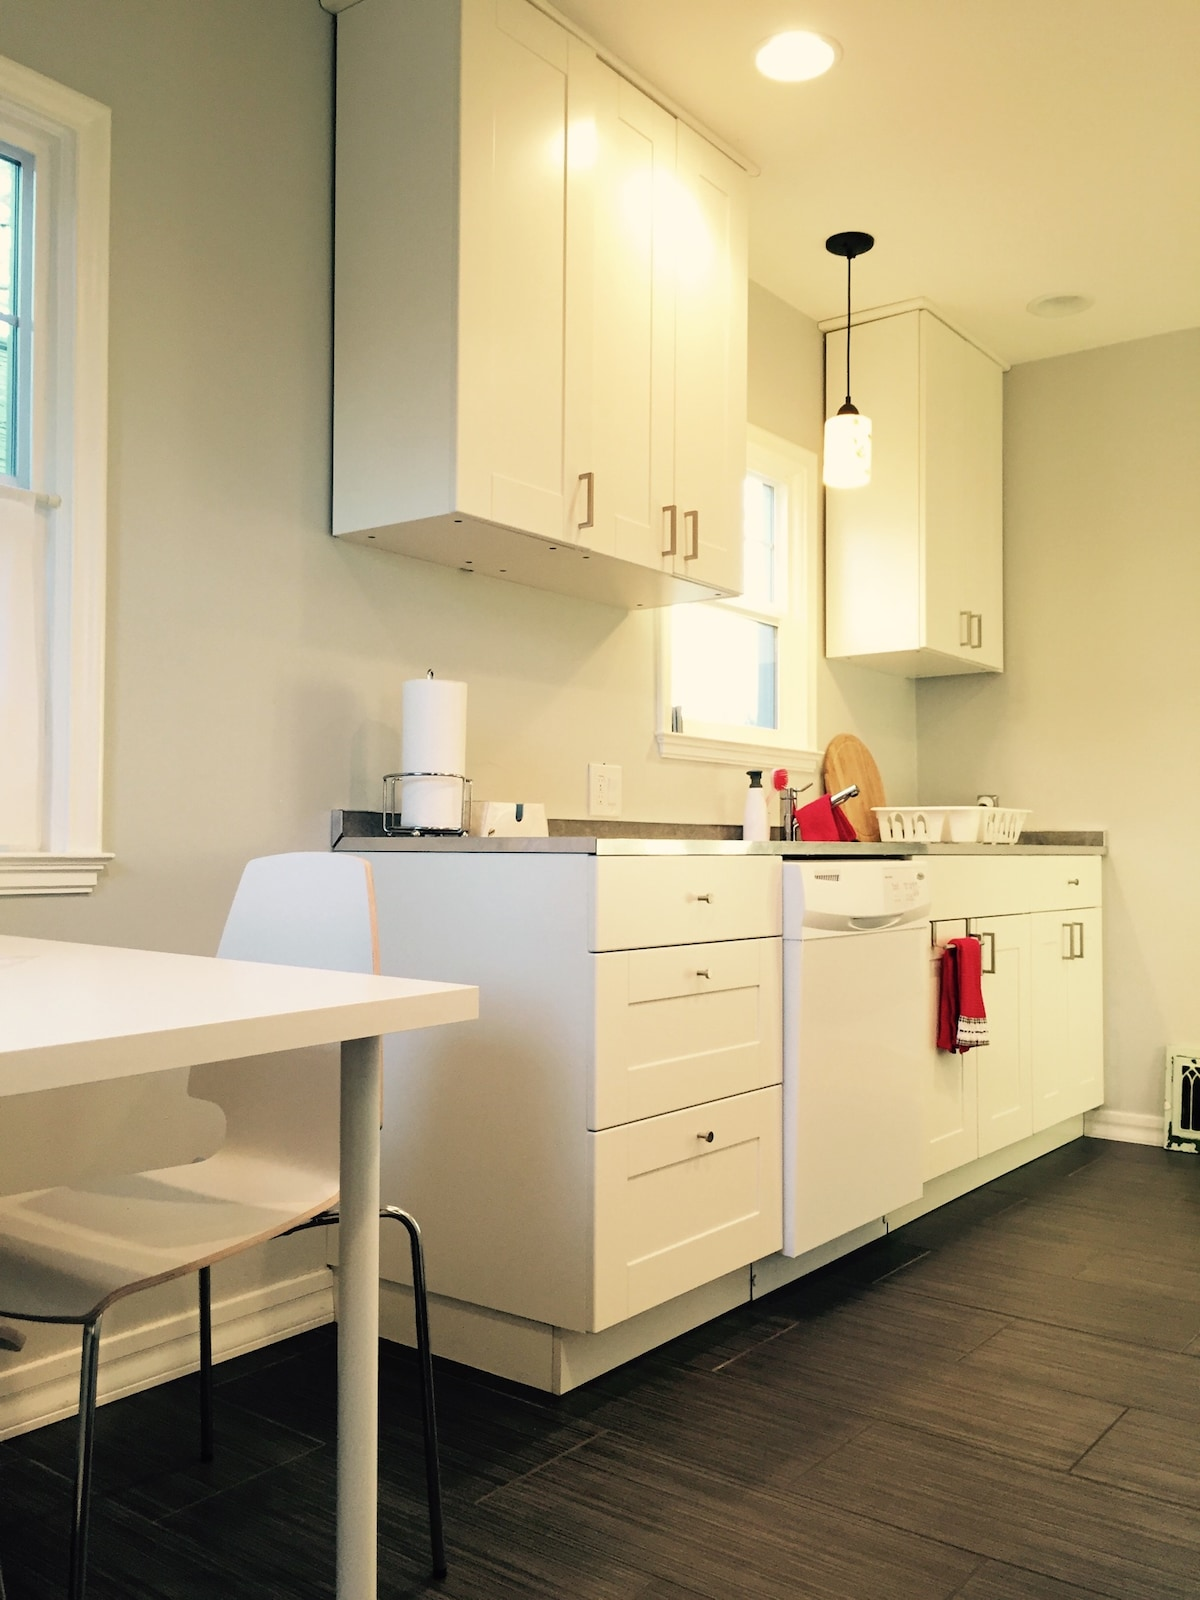 Bright, clean kitchen with a small table for two. Everything you need to make a nice meal. Dishwasher included!.